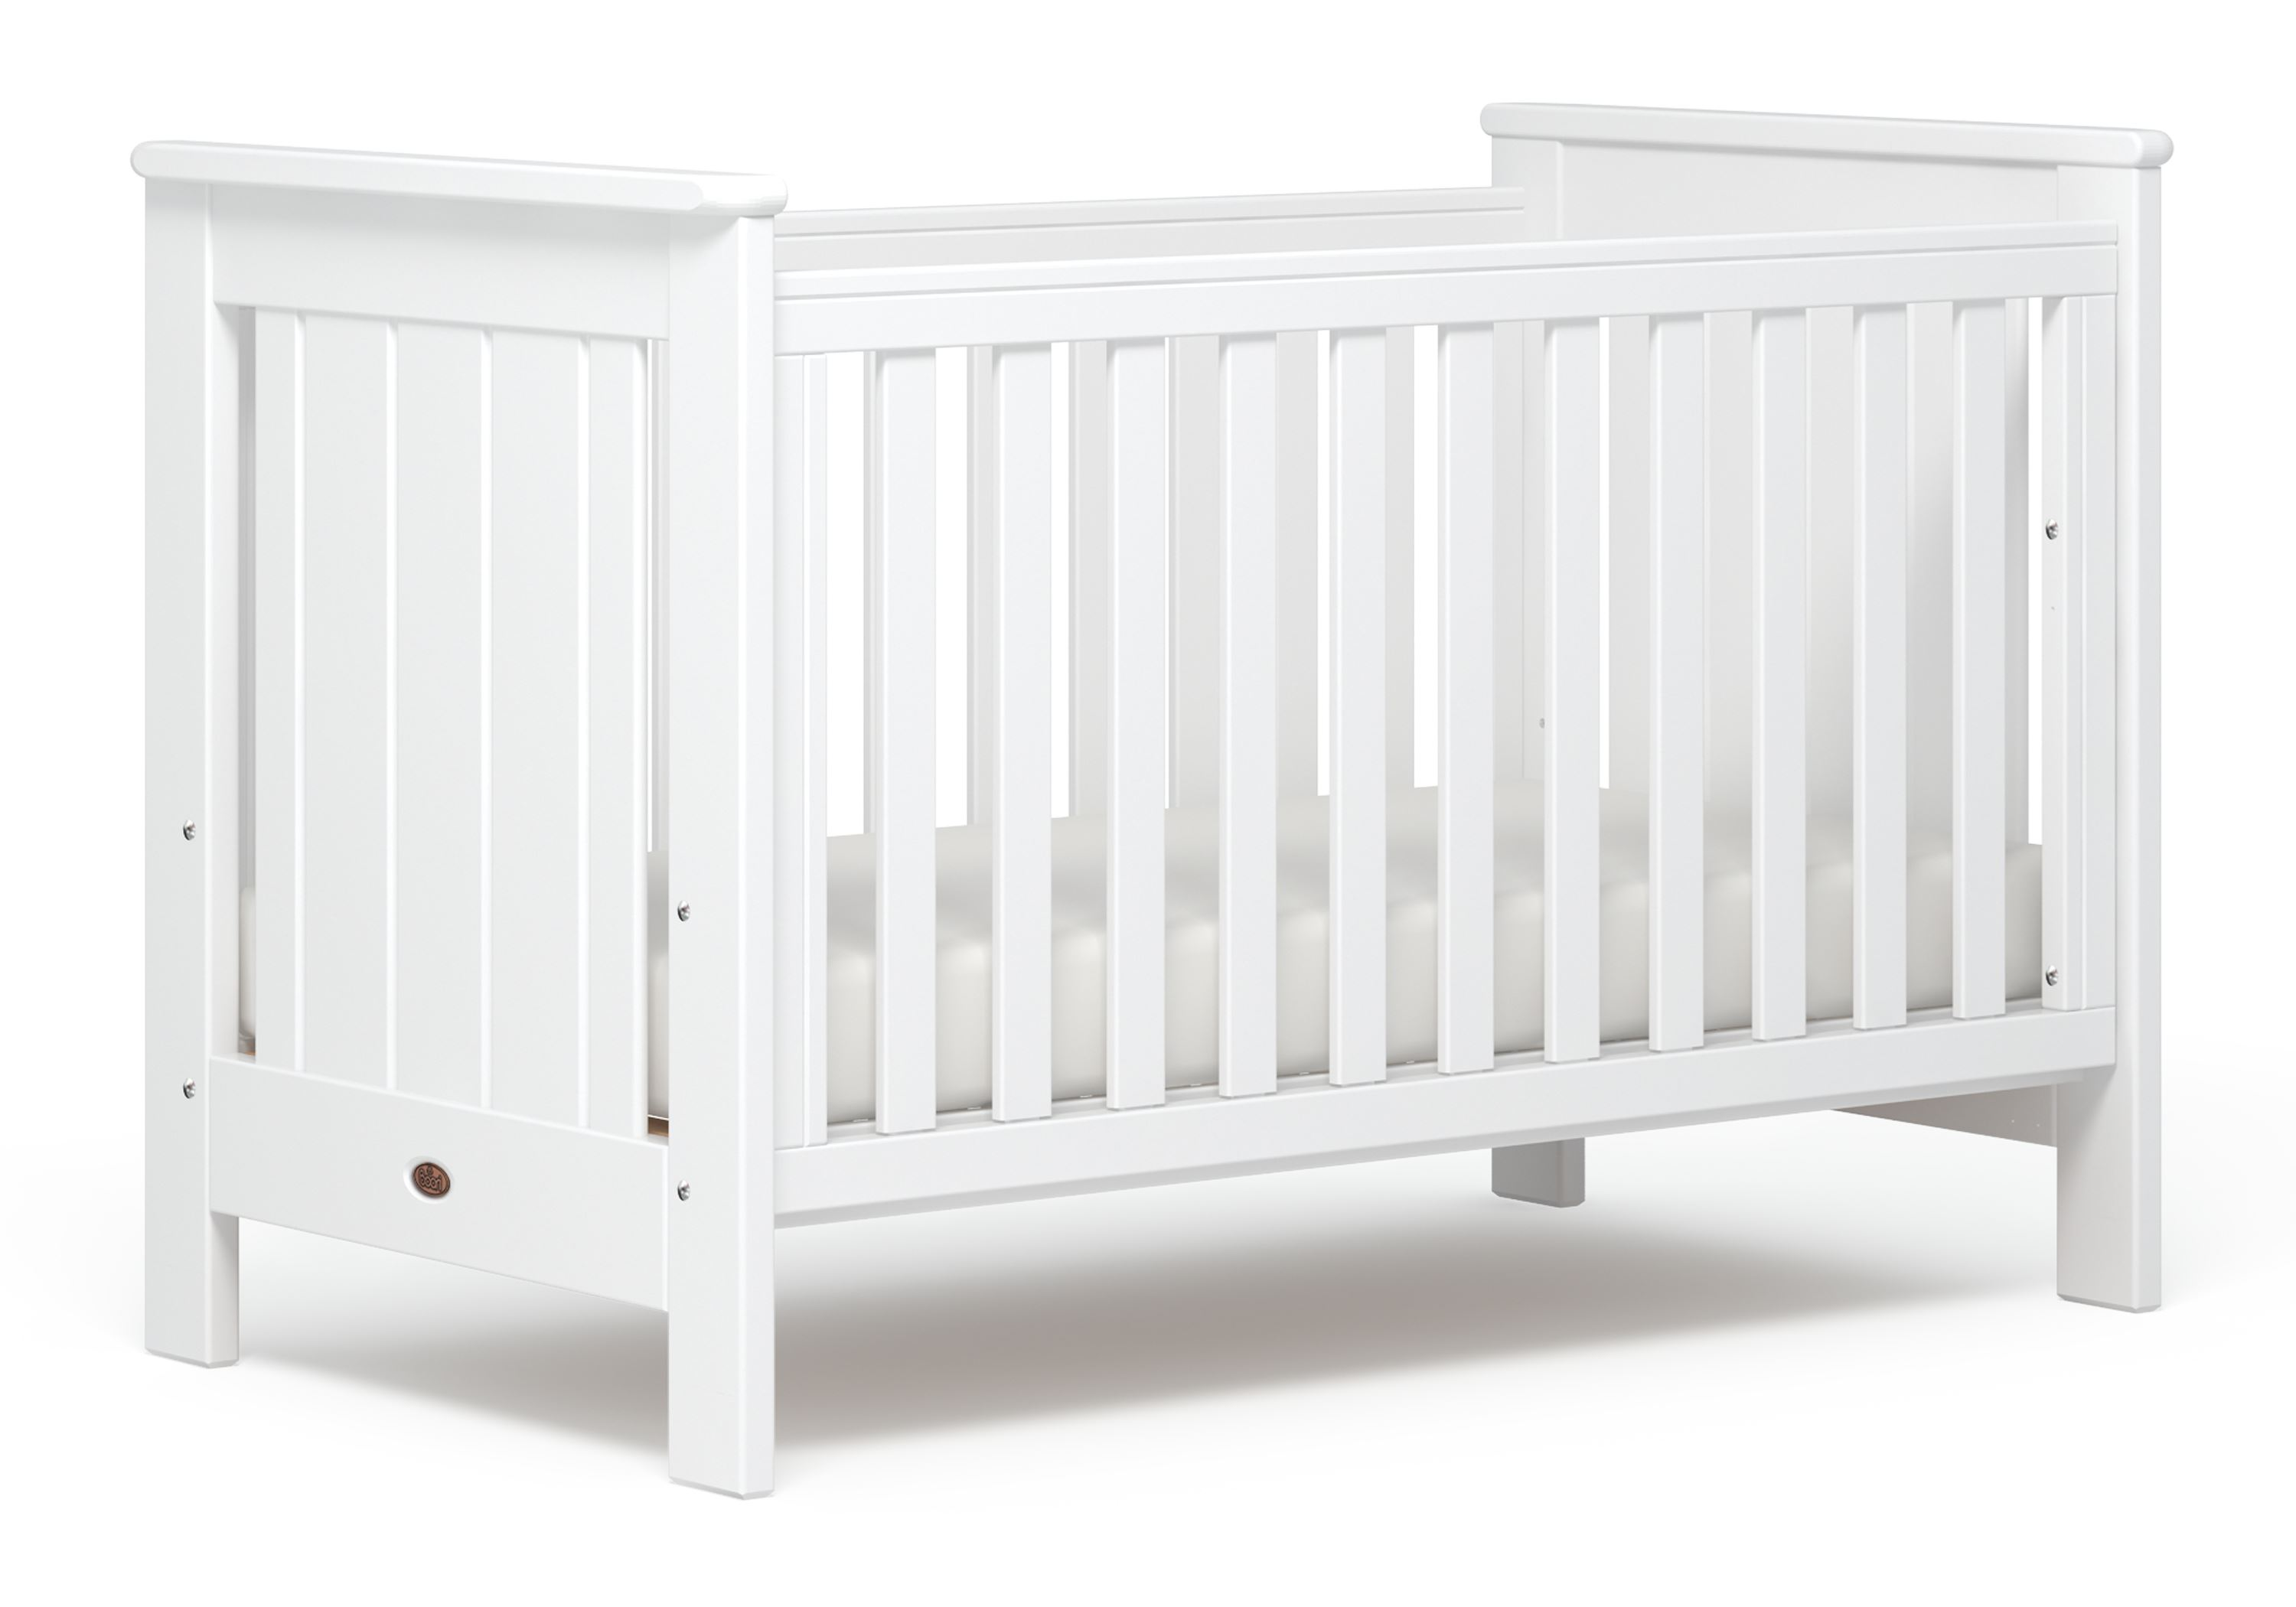 Plaza Cot bed (Dropside) - White